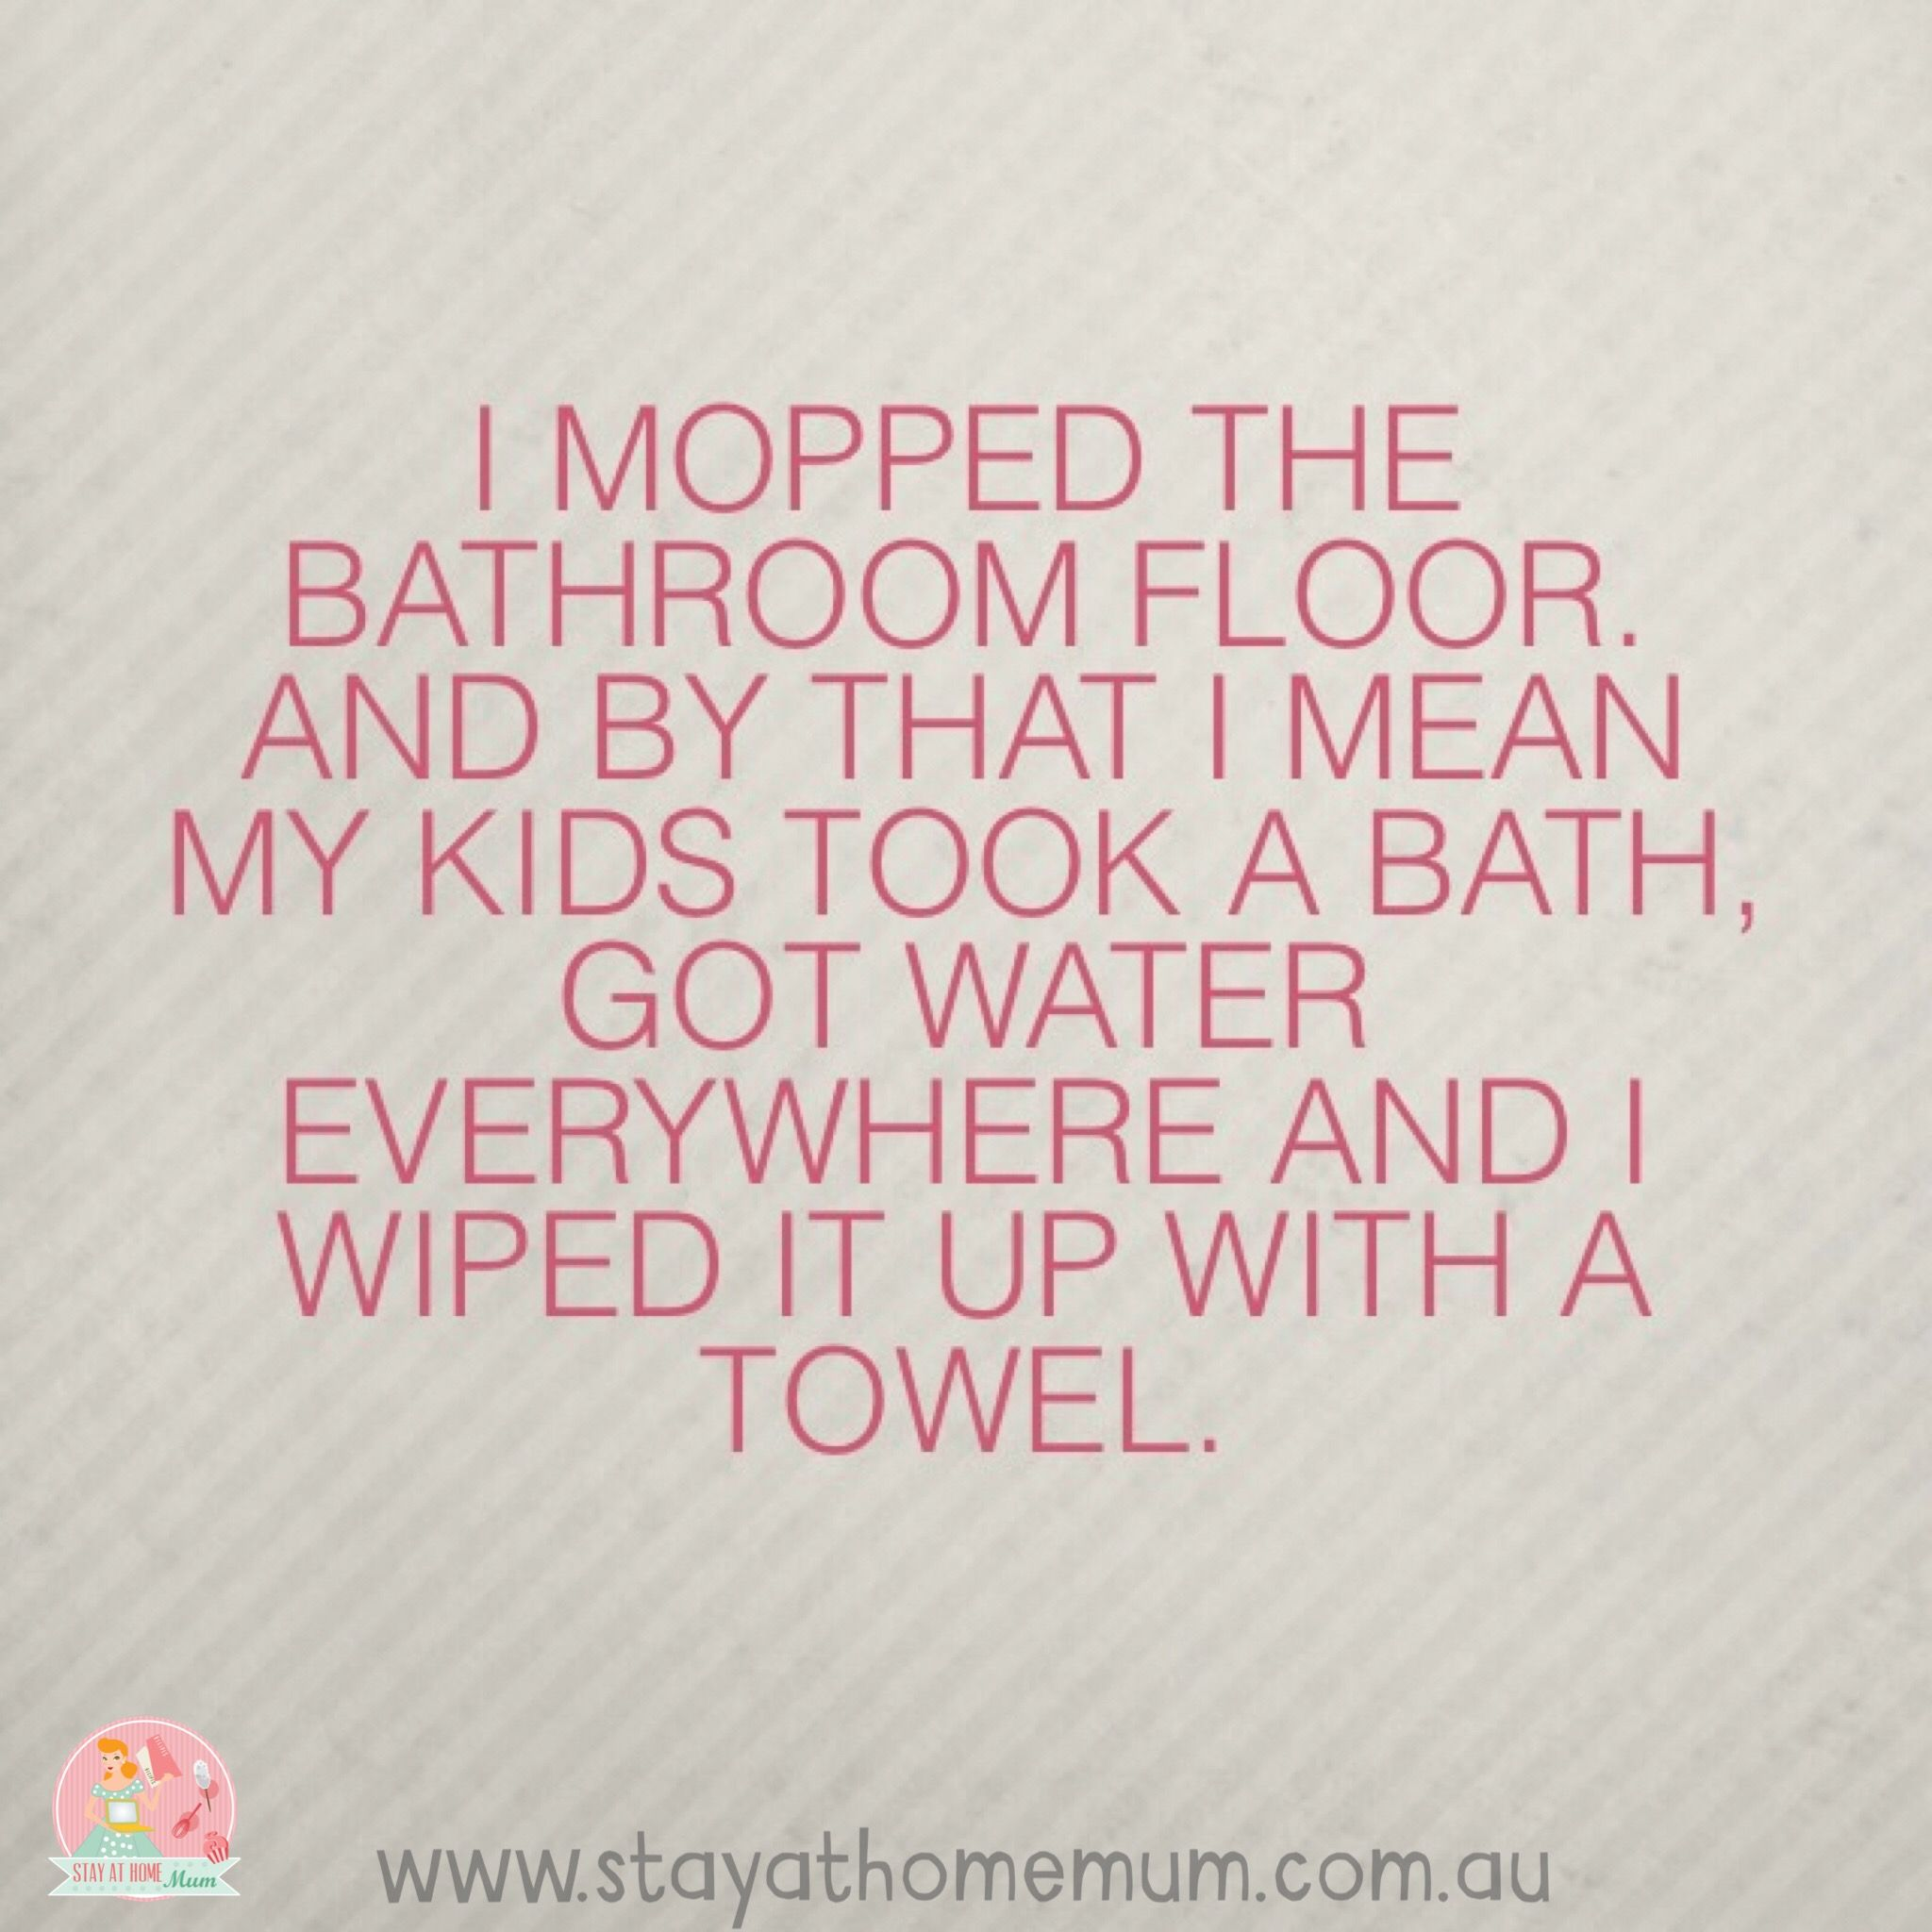 I mopped the bathroom floor......